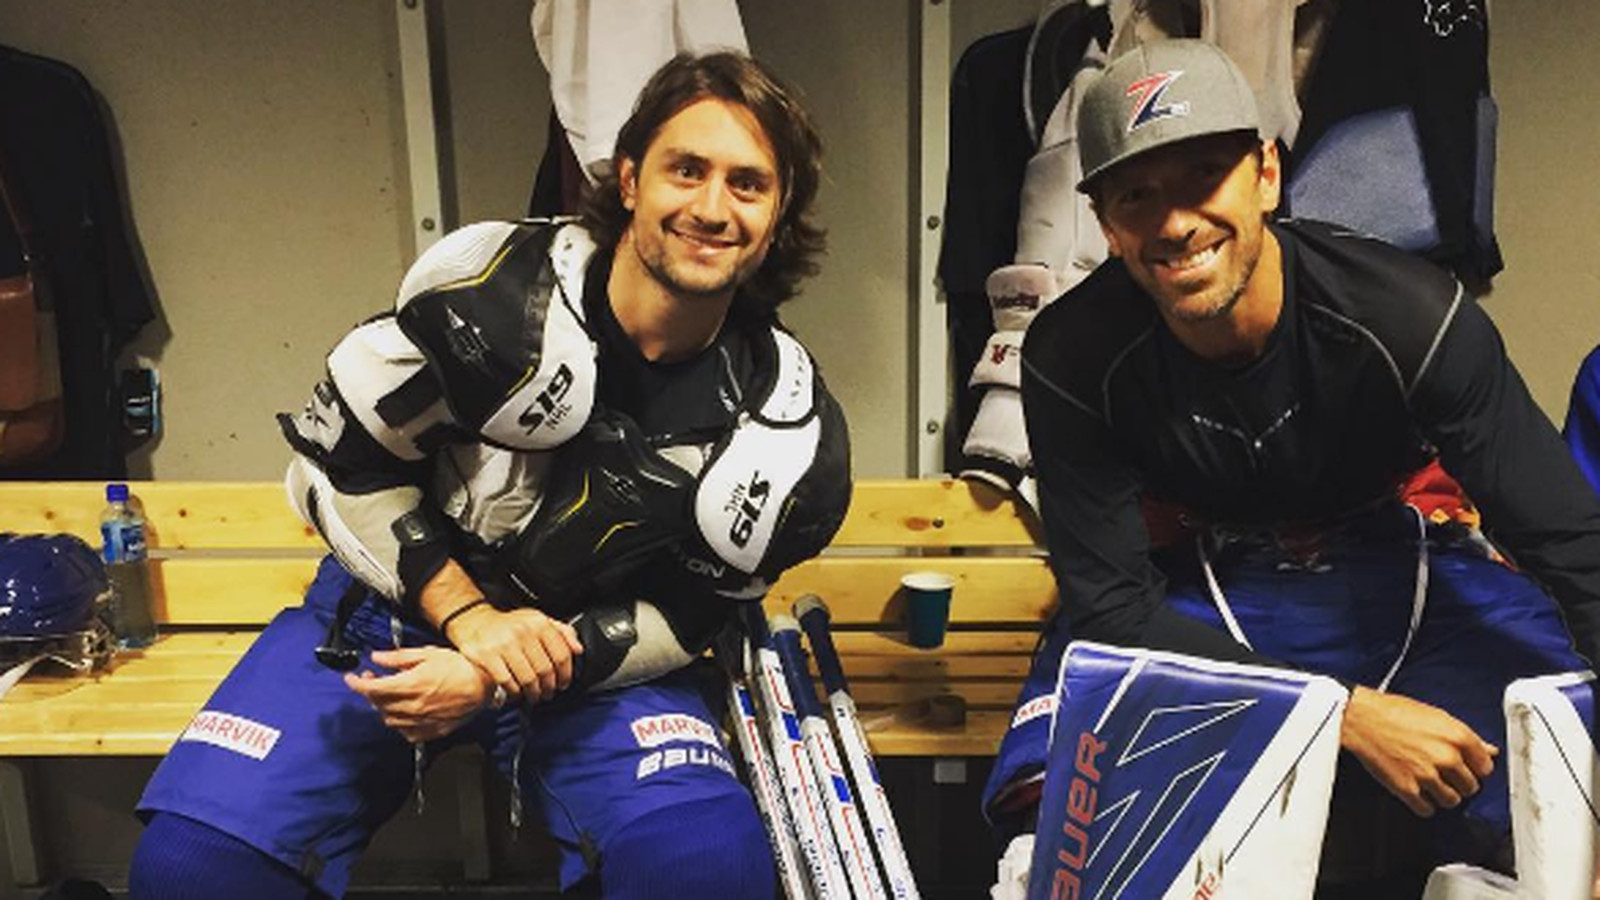 Mats Zuccarello Henrik Lundqvist Took To The Ice Again